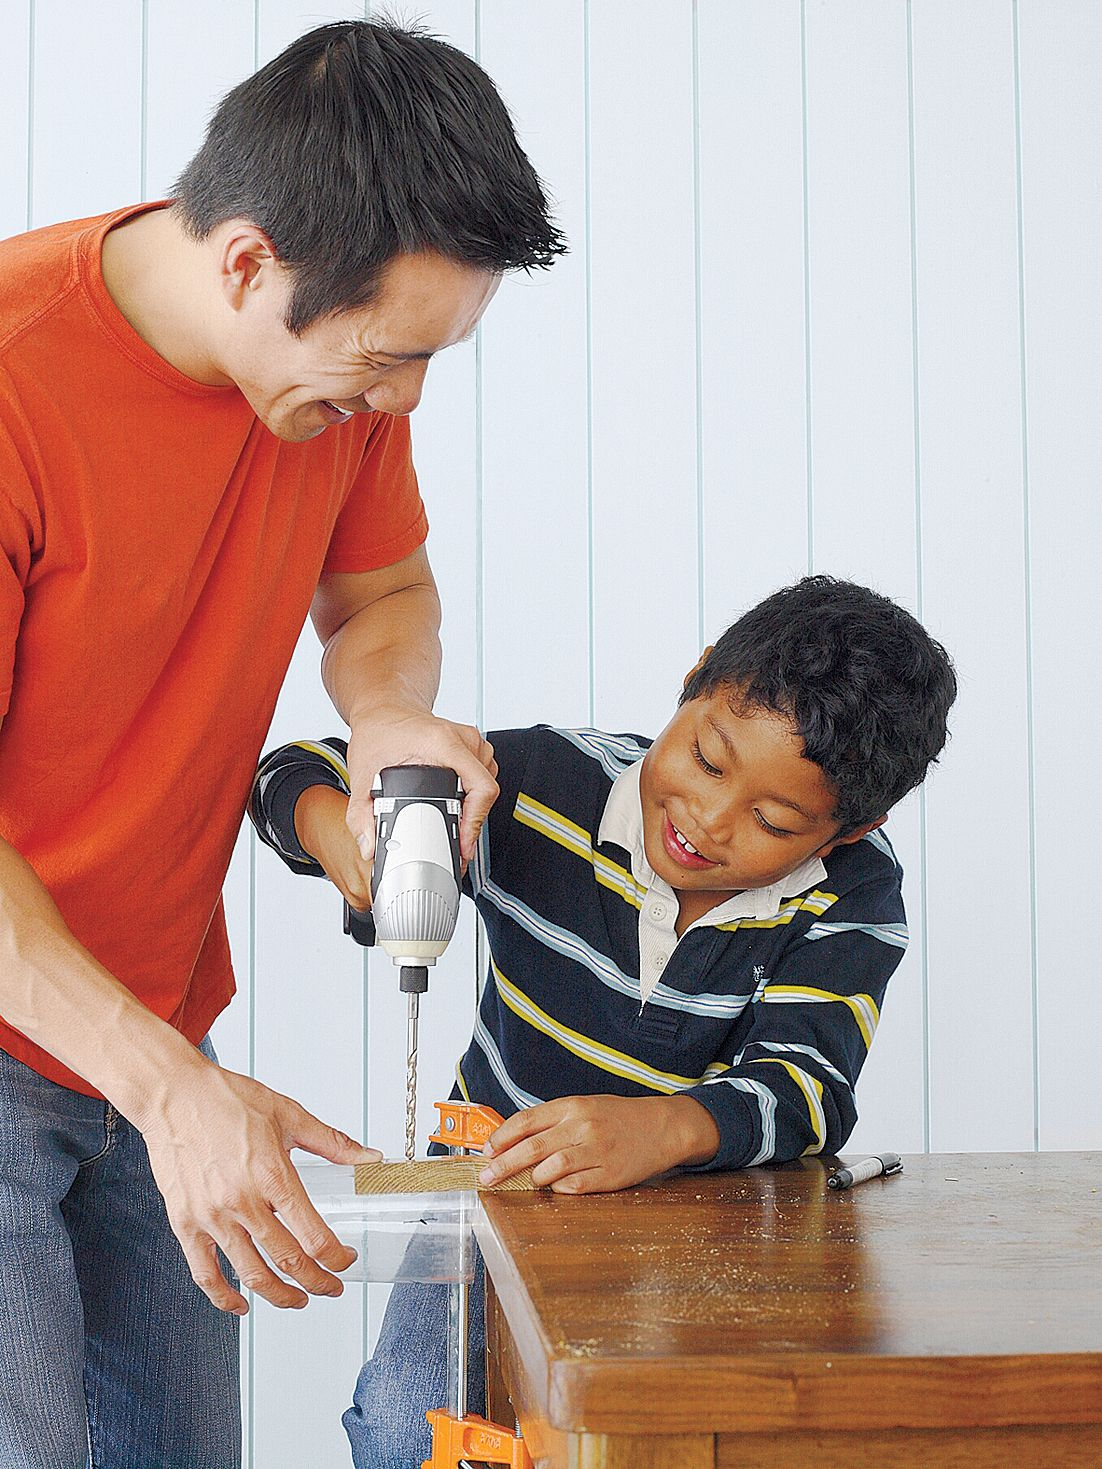 Parent and child working together to drill through wood.